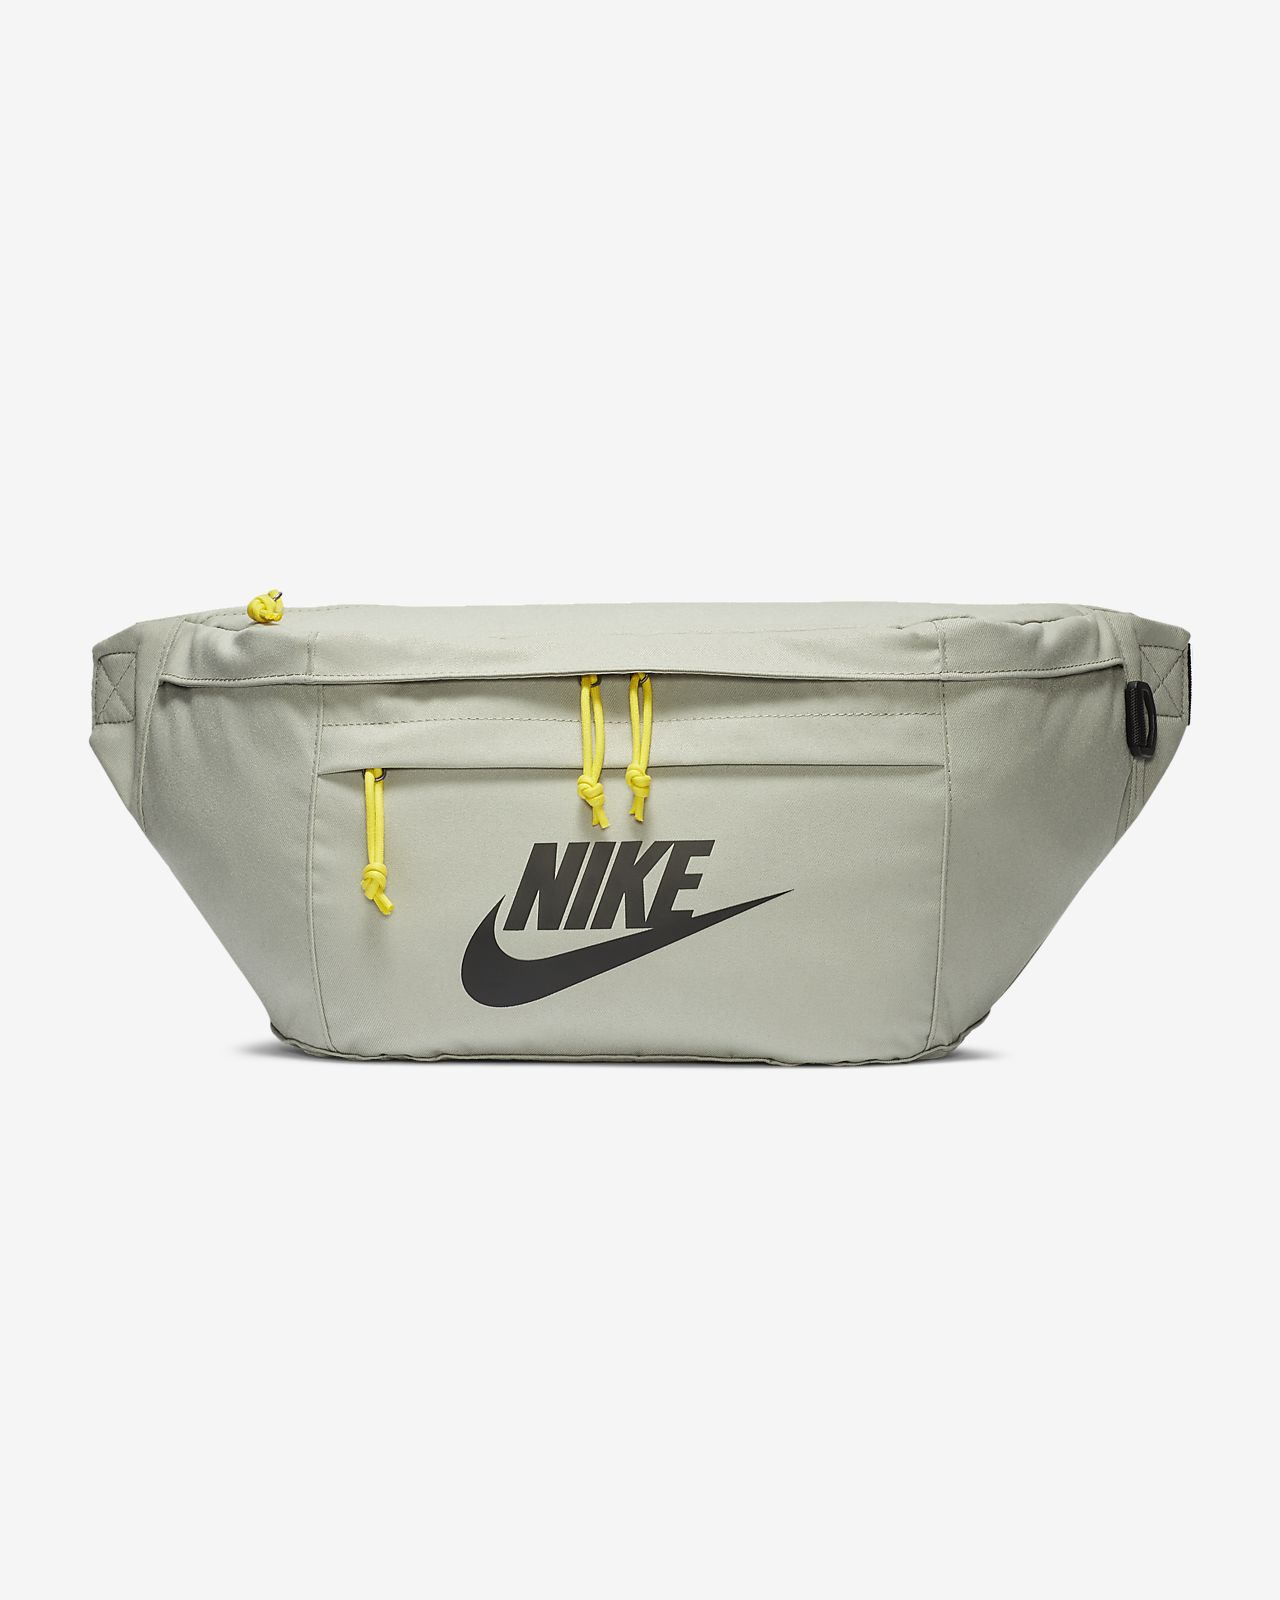 7cb8ec63be91 Low Resolution Nike Hip Pack Nike Hip Pack